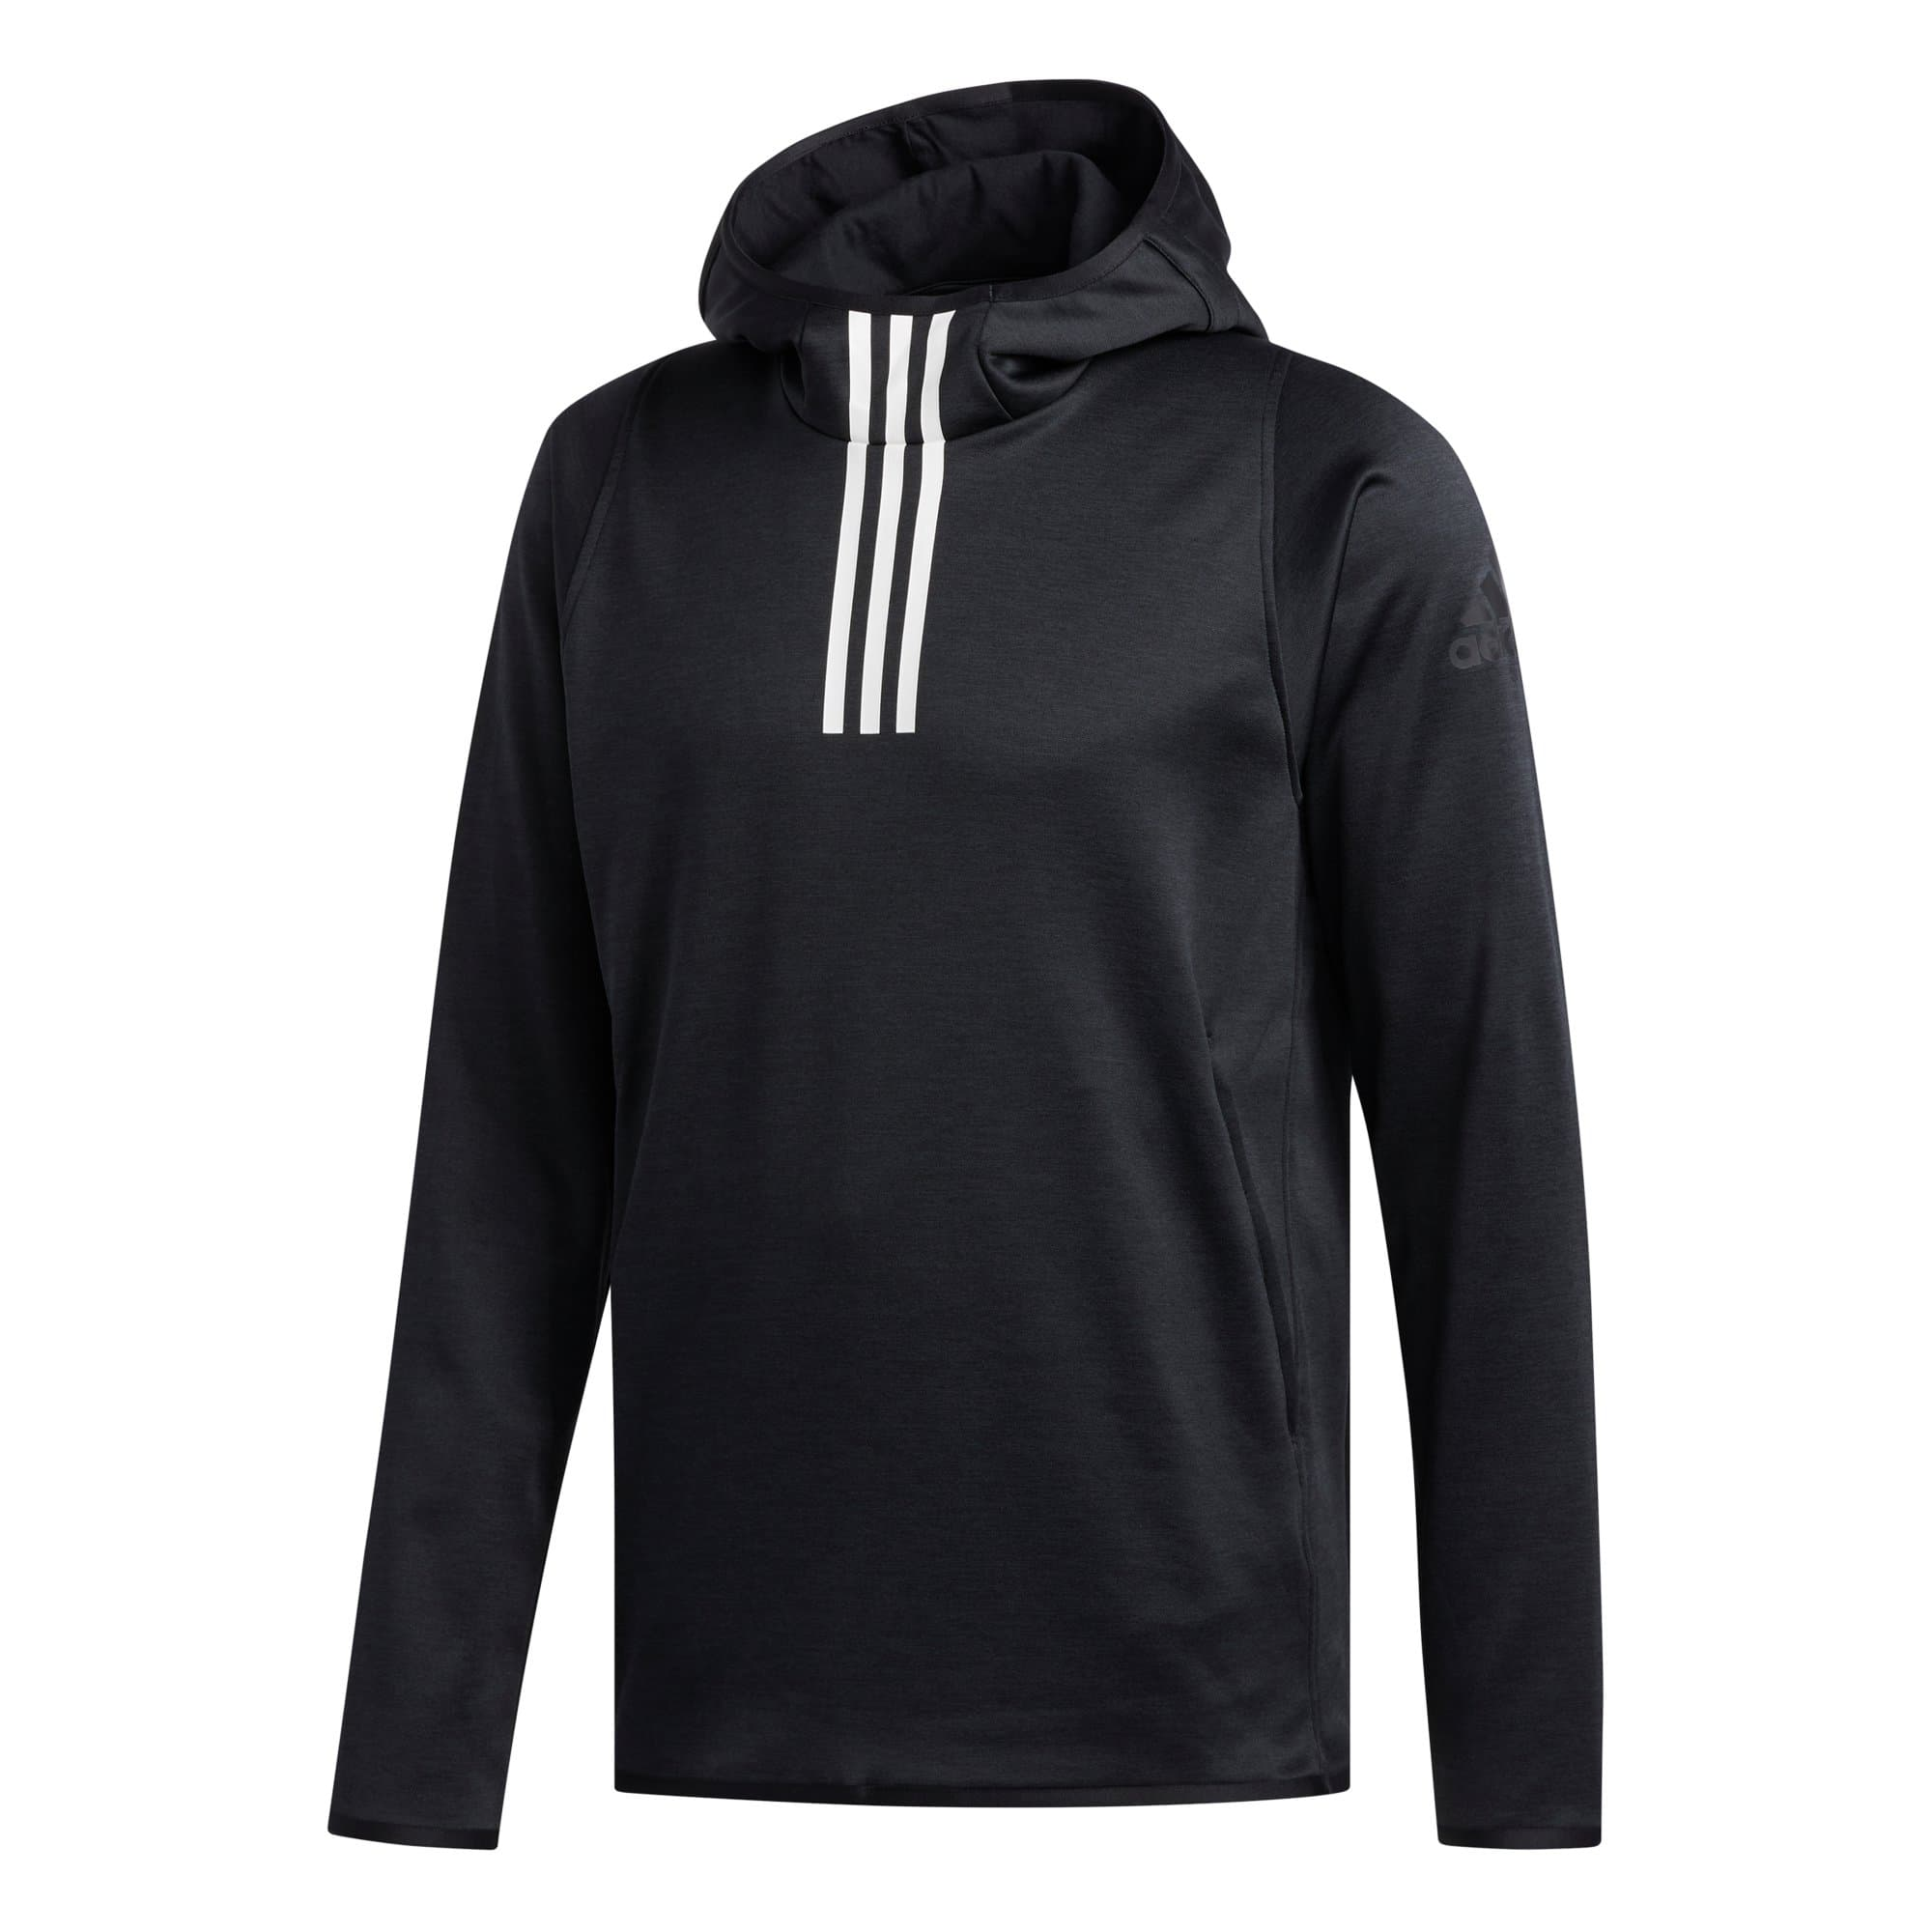 Adidas Warm 3S Hoodie Hoody pour homme